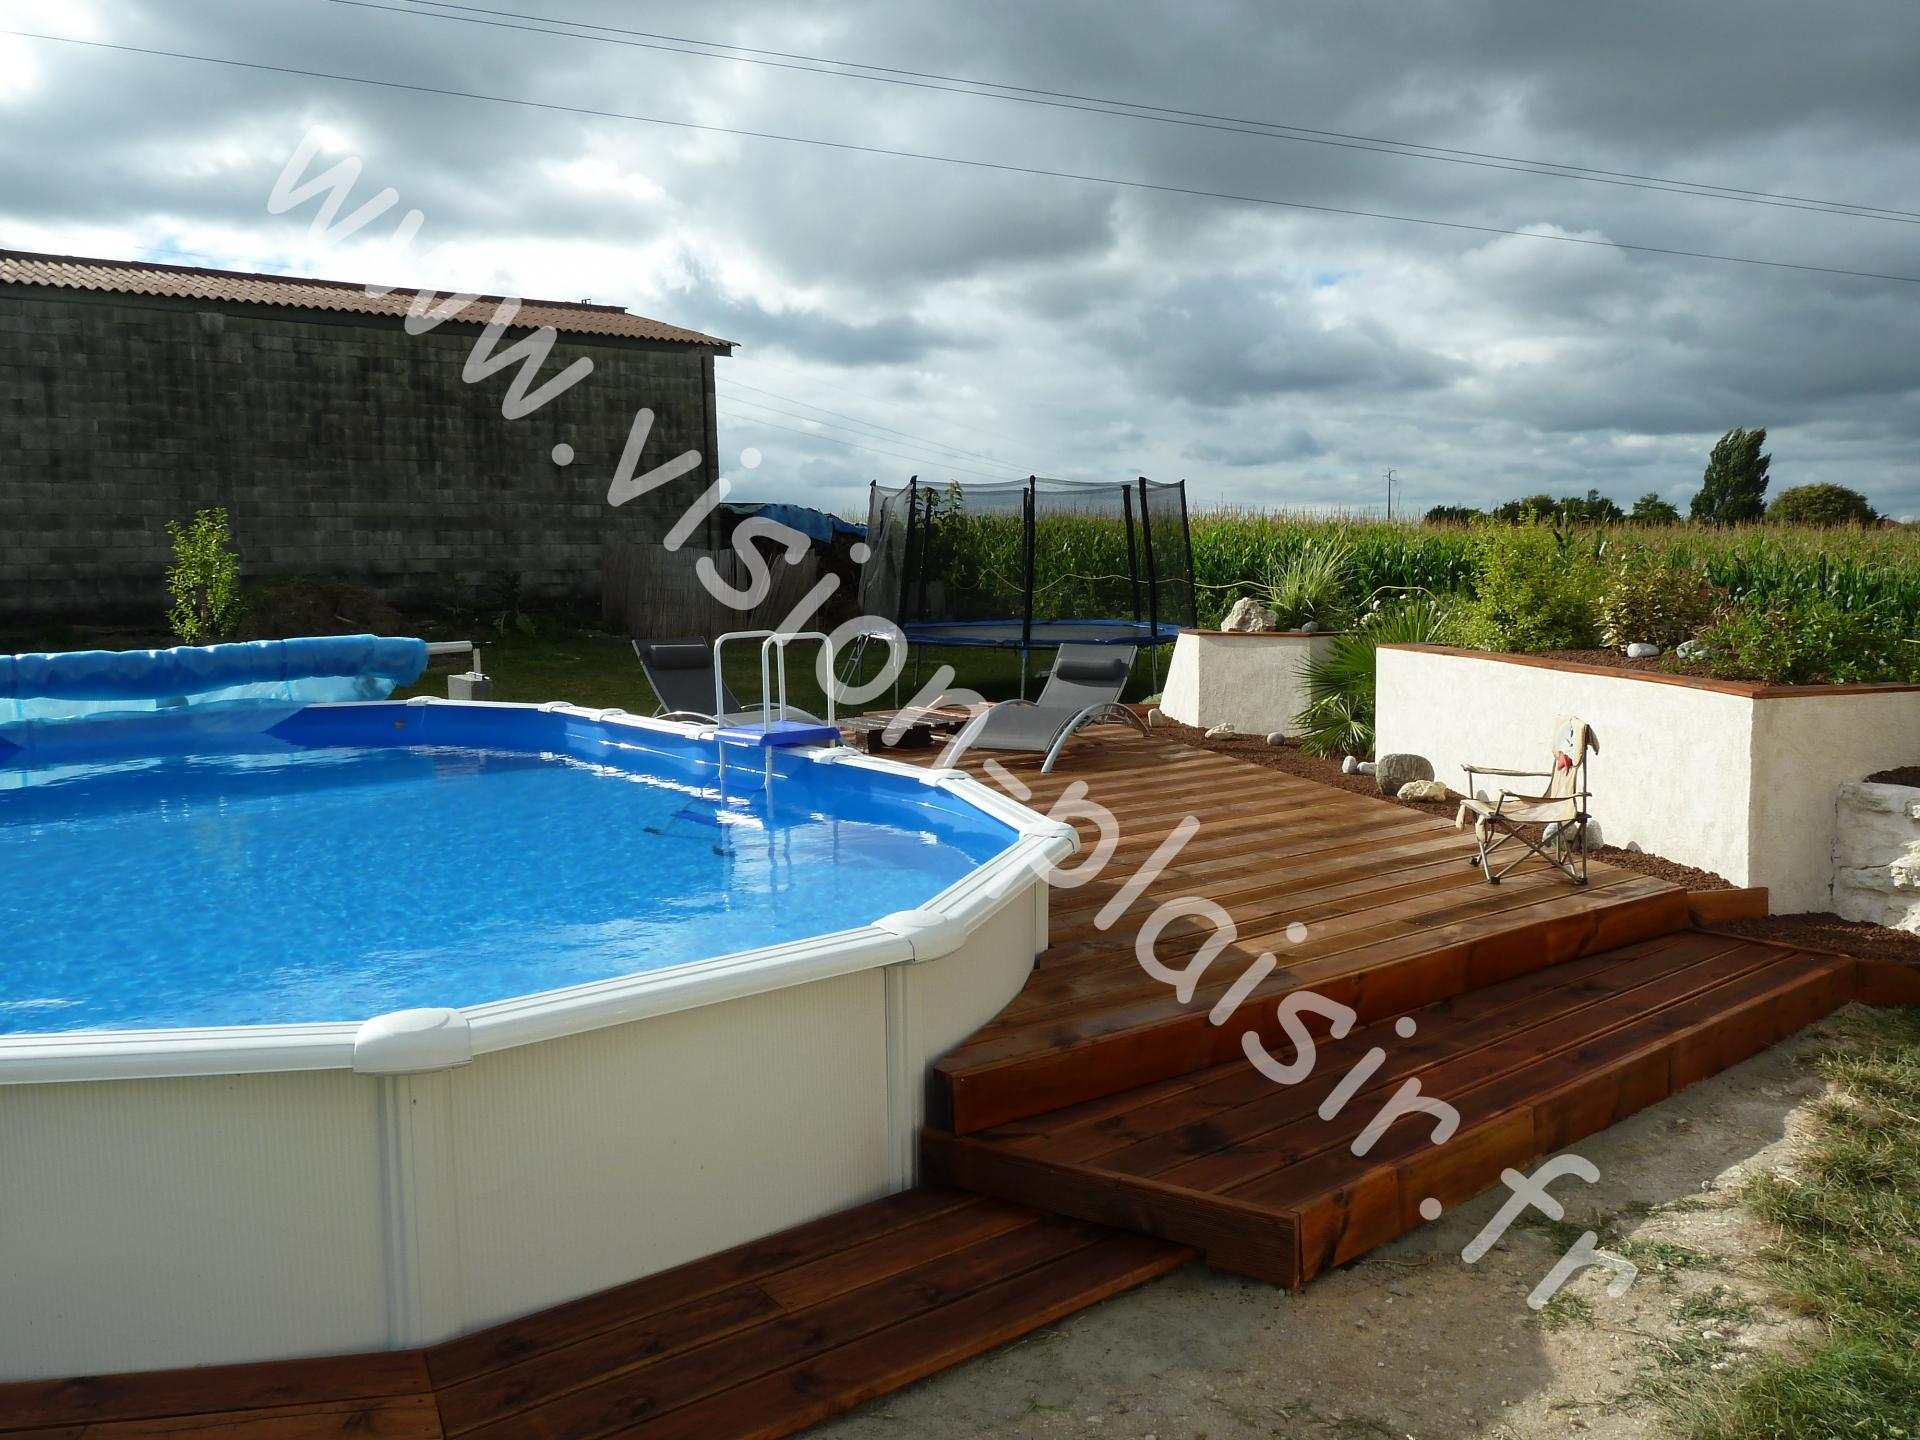 Blog de vision plaisir piscine hors sol semi enterr e for Piscine bois semi enterree rectangulaire